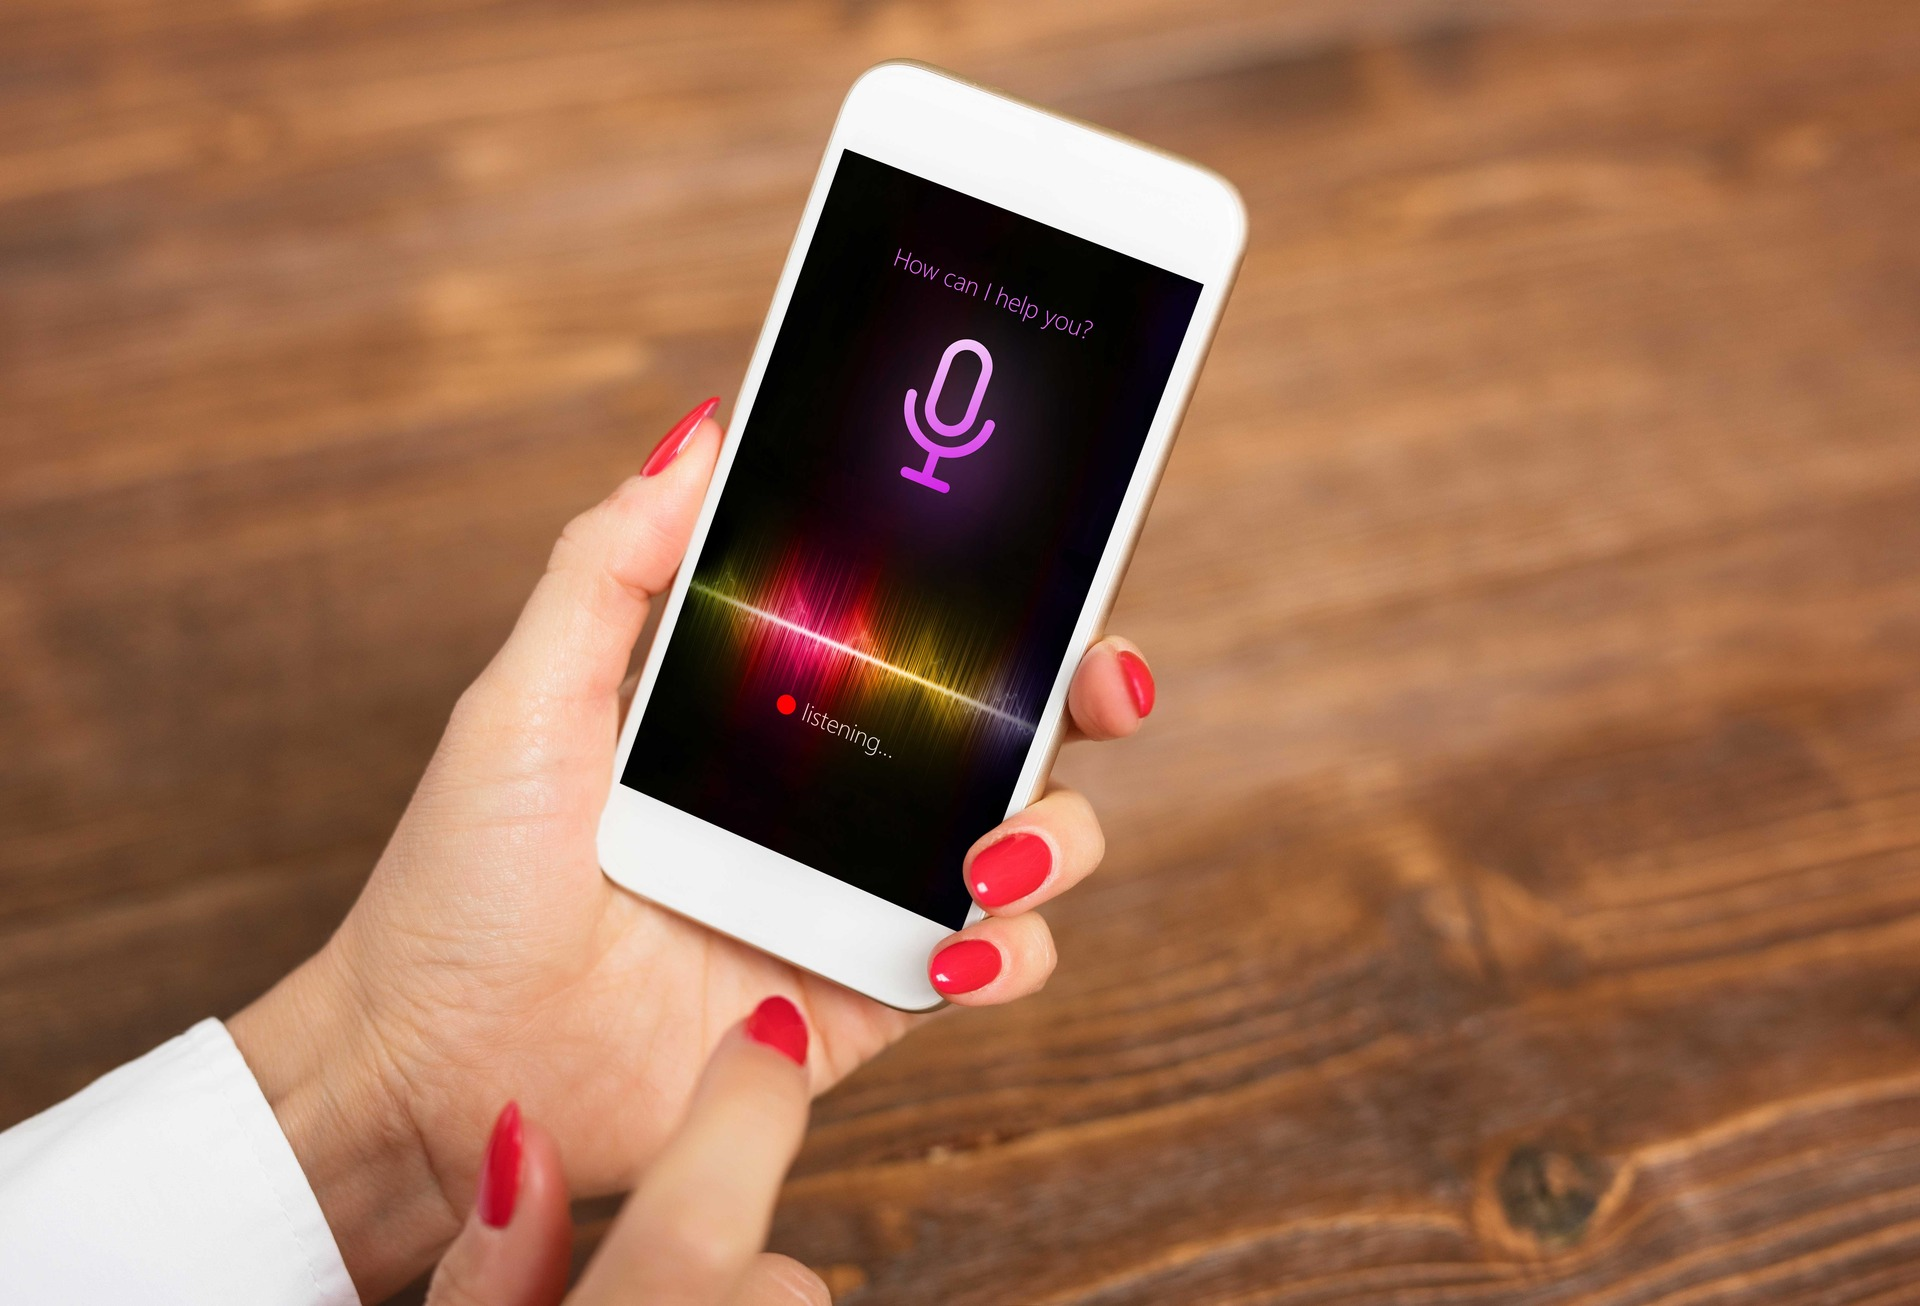 Apple says its contractors will stop listening to users through Siri